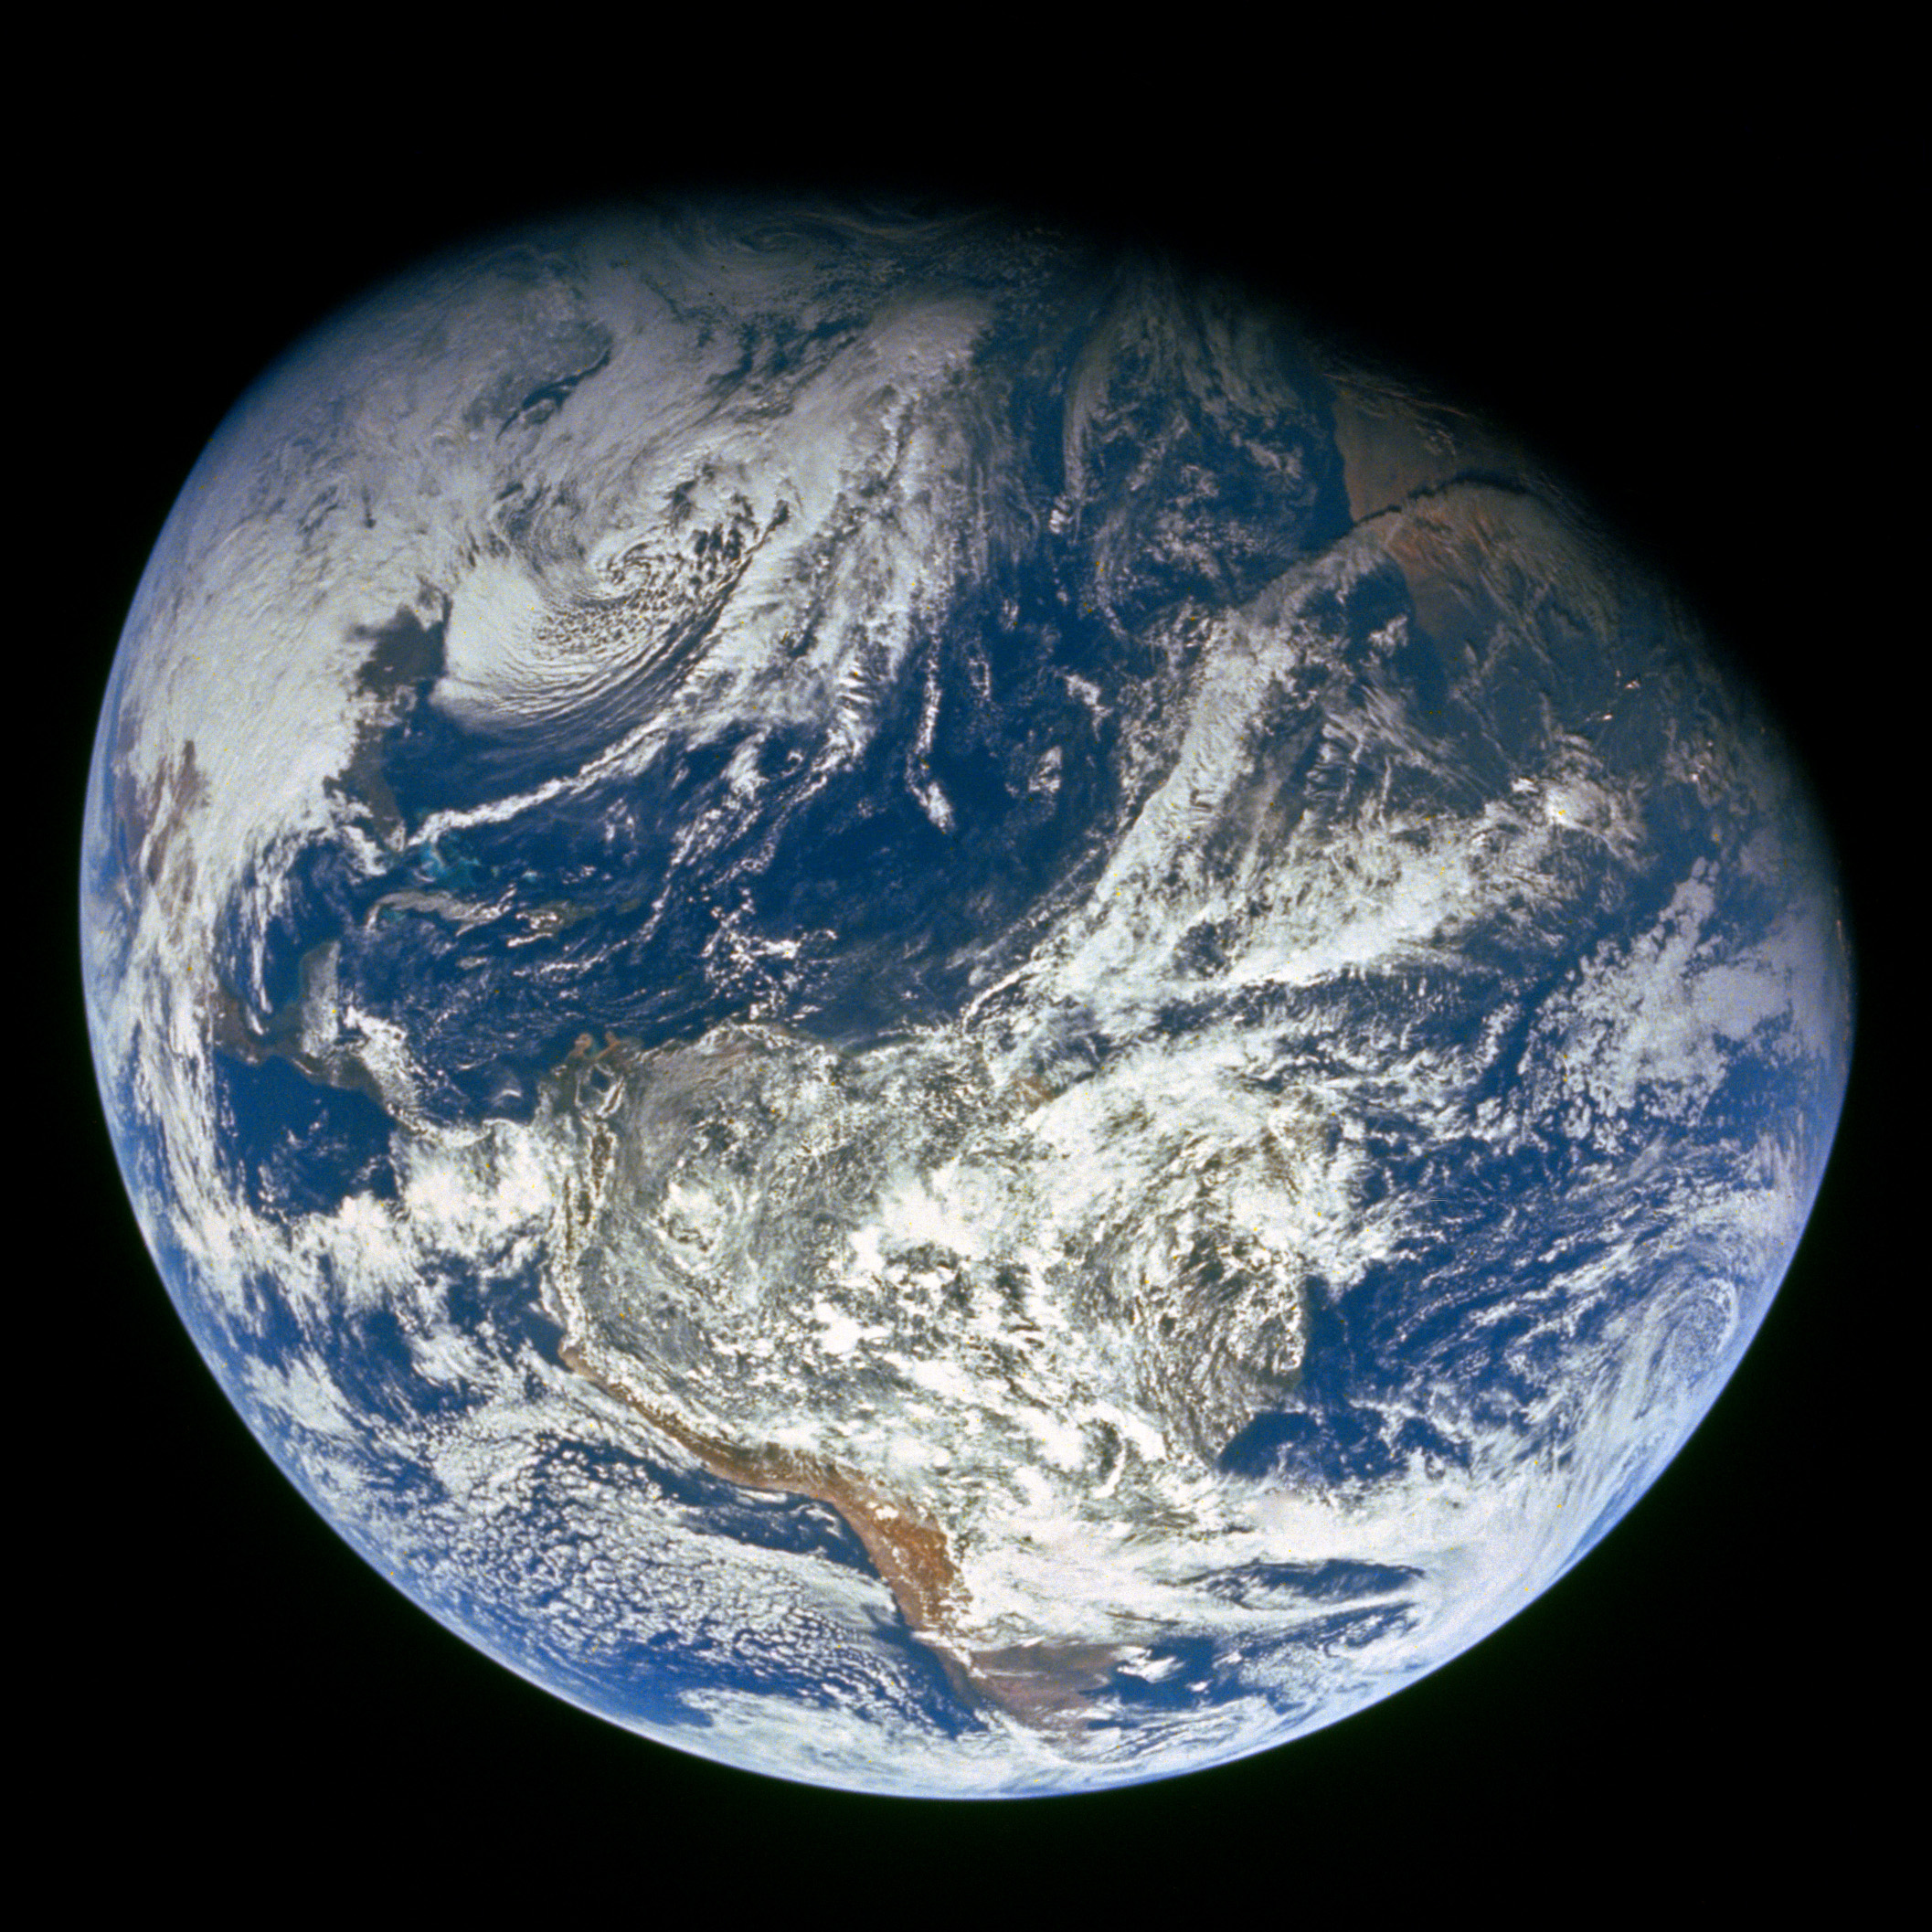 nasa photos earth - photo #10